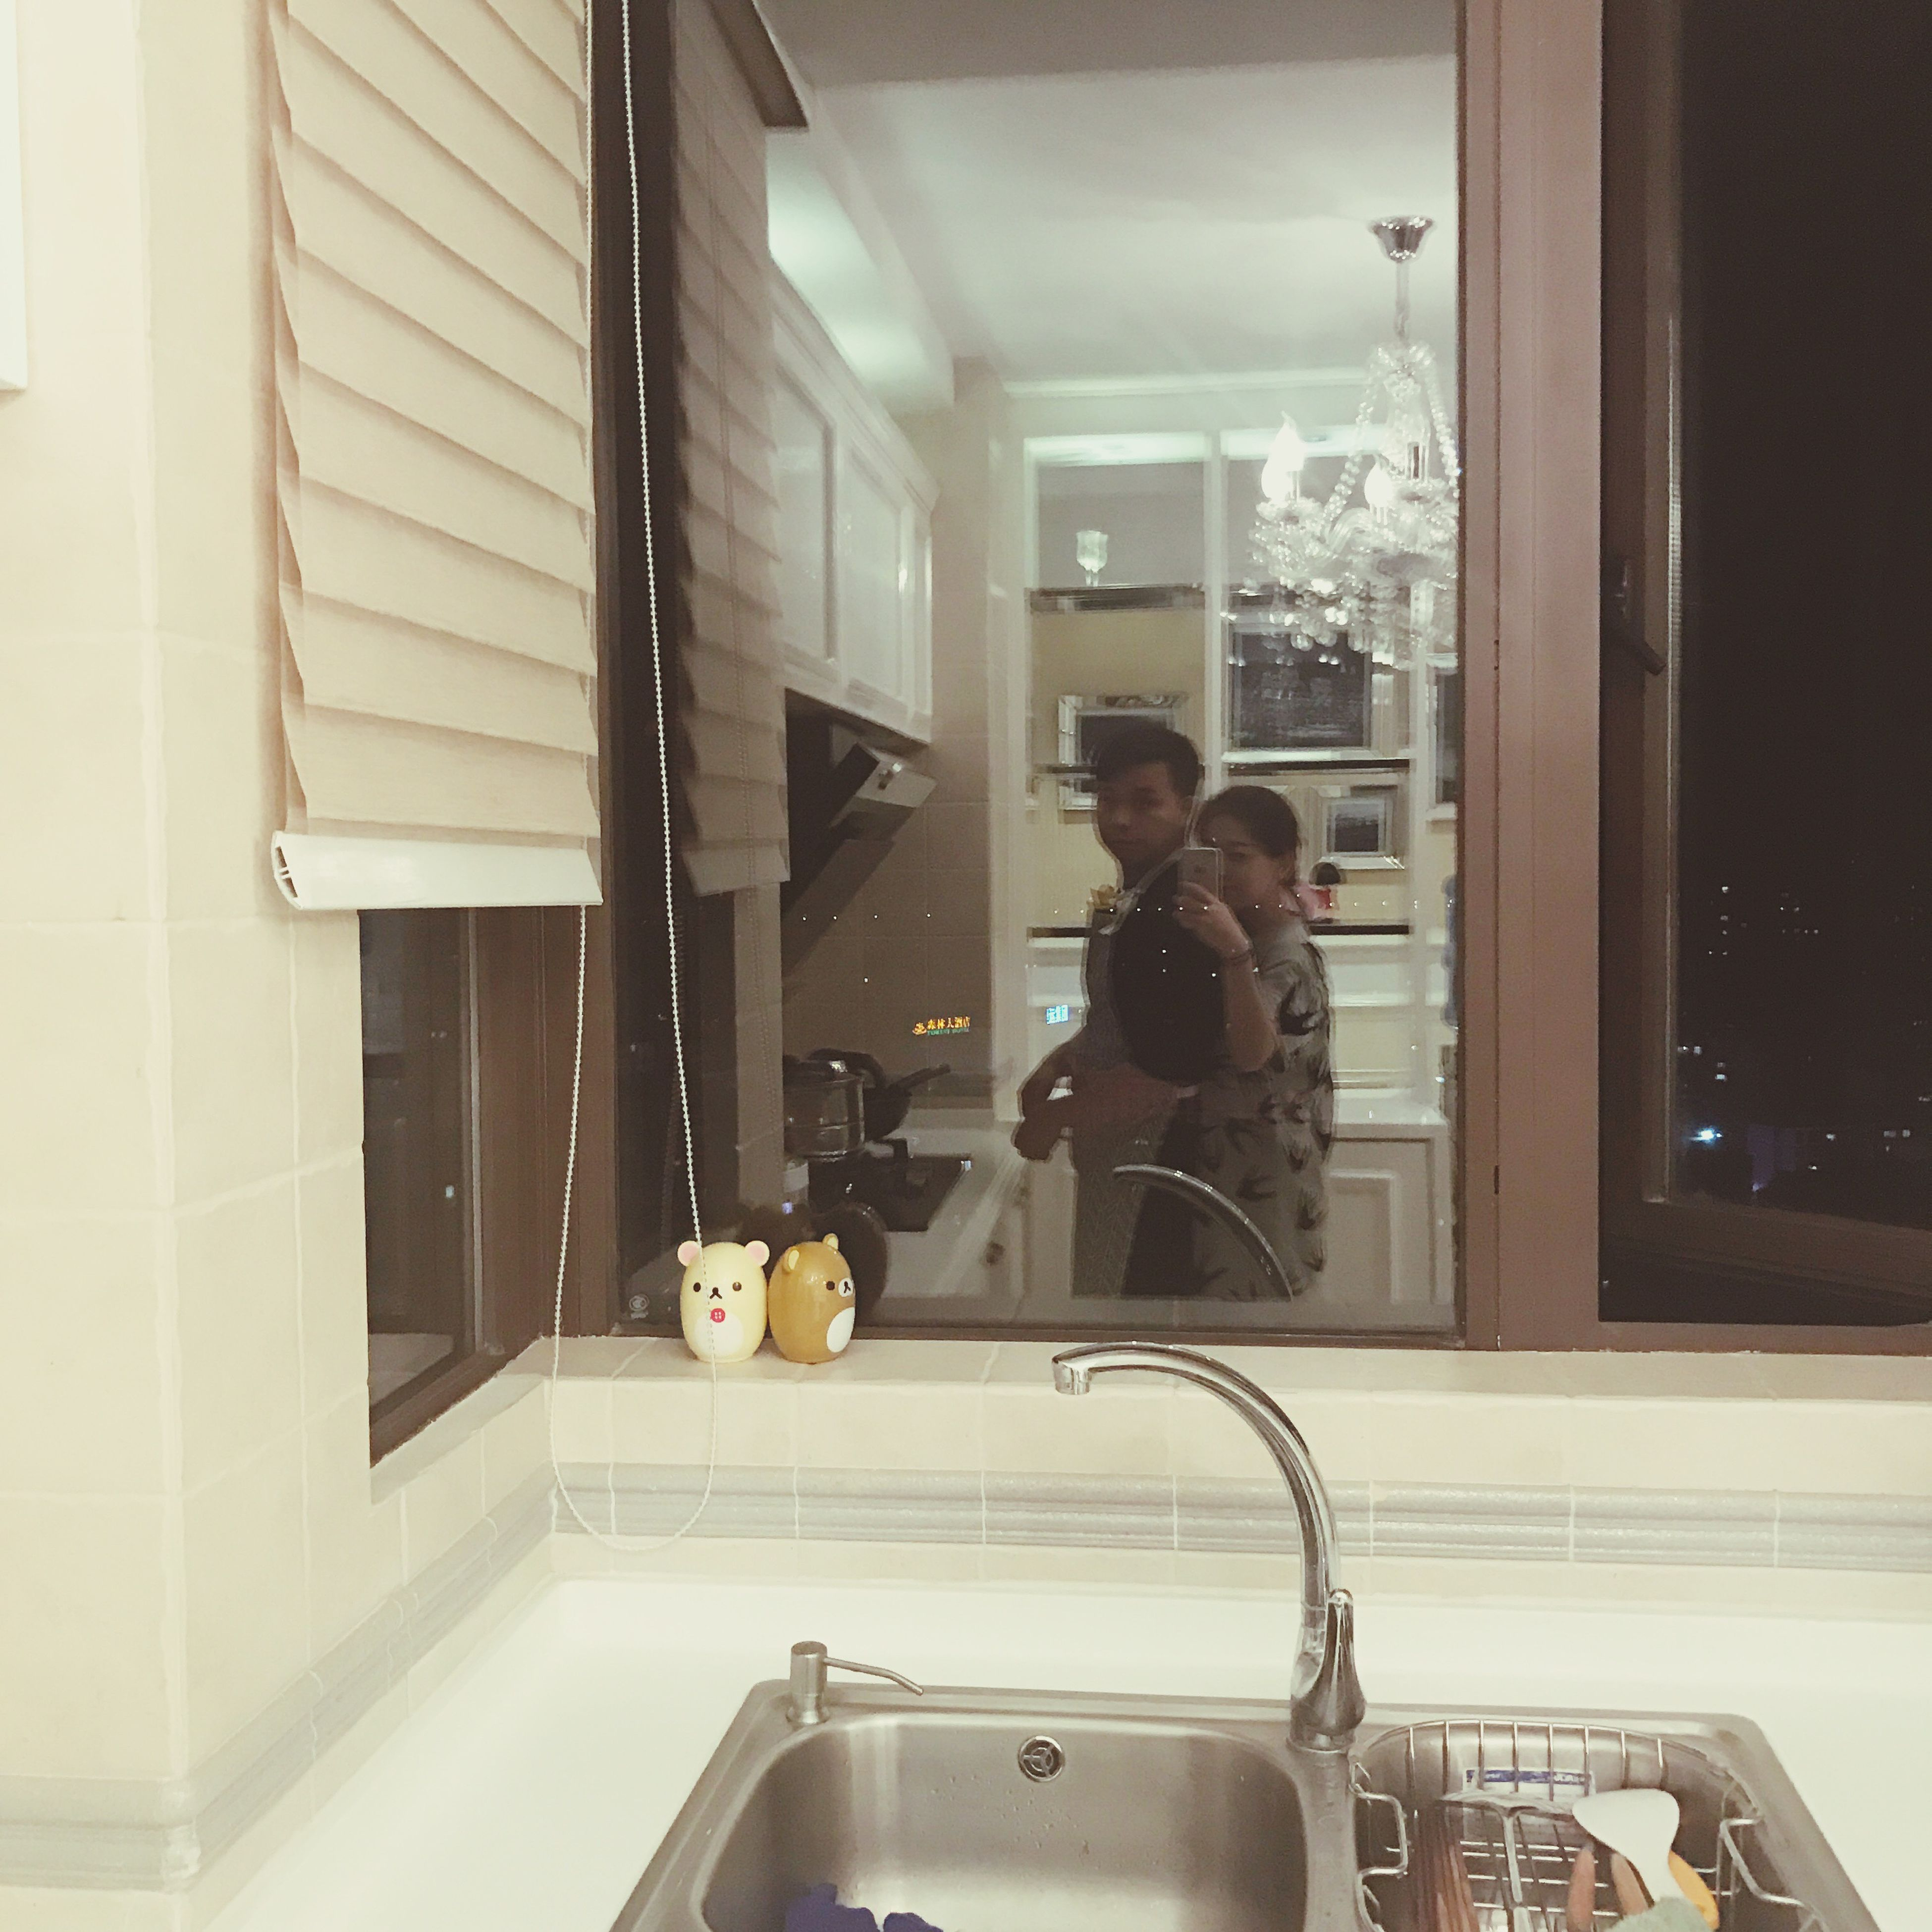 domestic room, domestic kitchen, indoors, kitchen sink, one person, kitchen, adults only, domestic life, people, adult, faucet, one woman only, hygiene, day